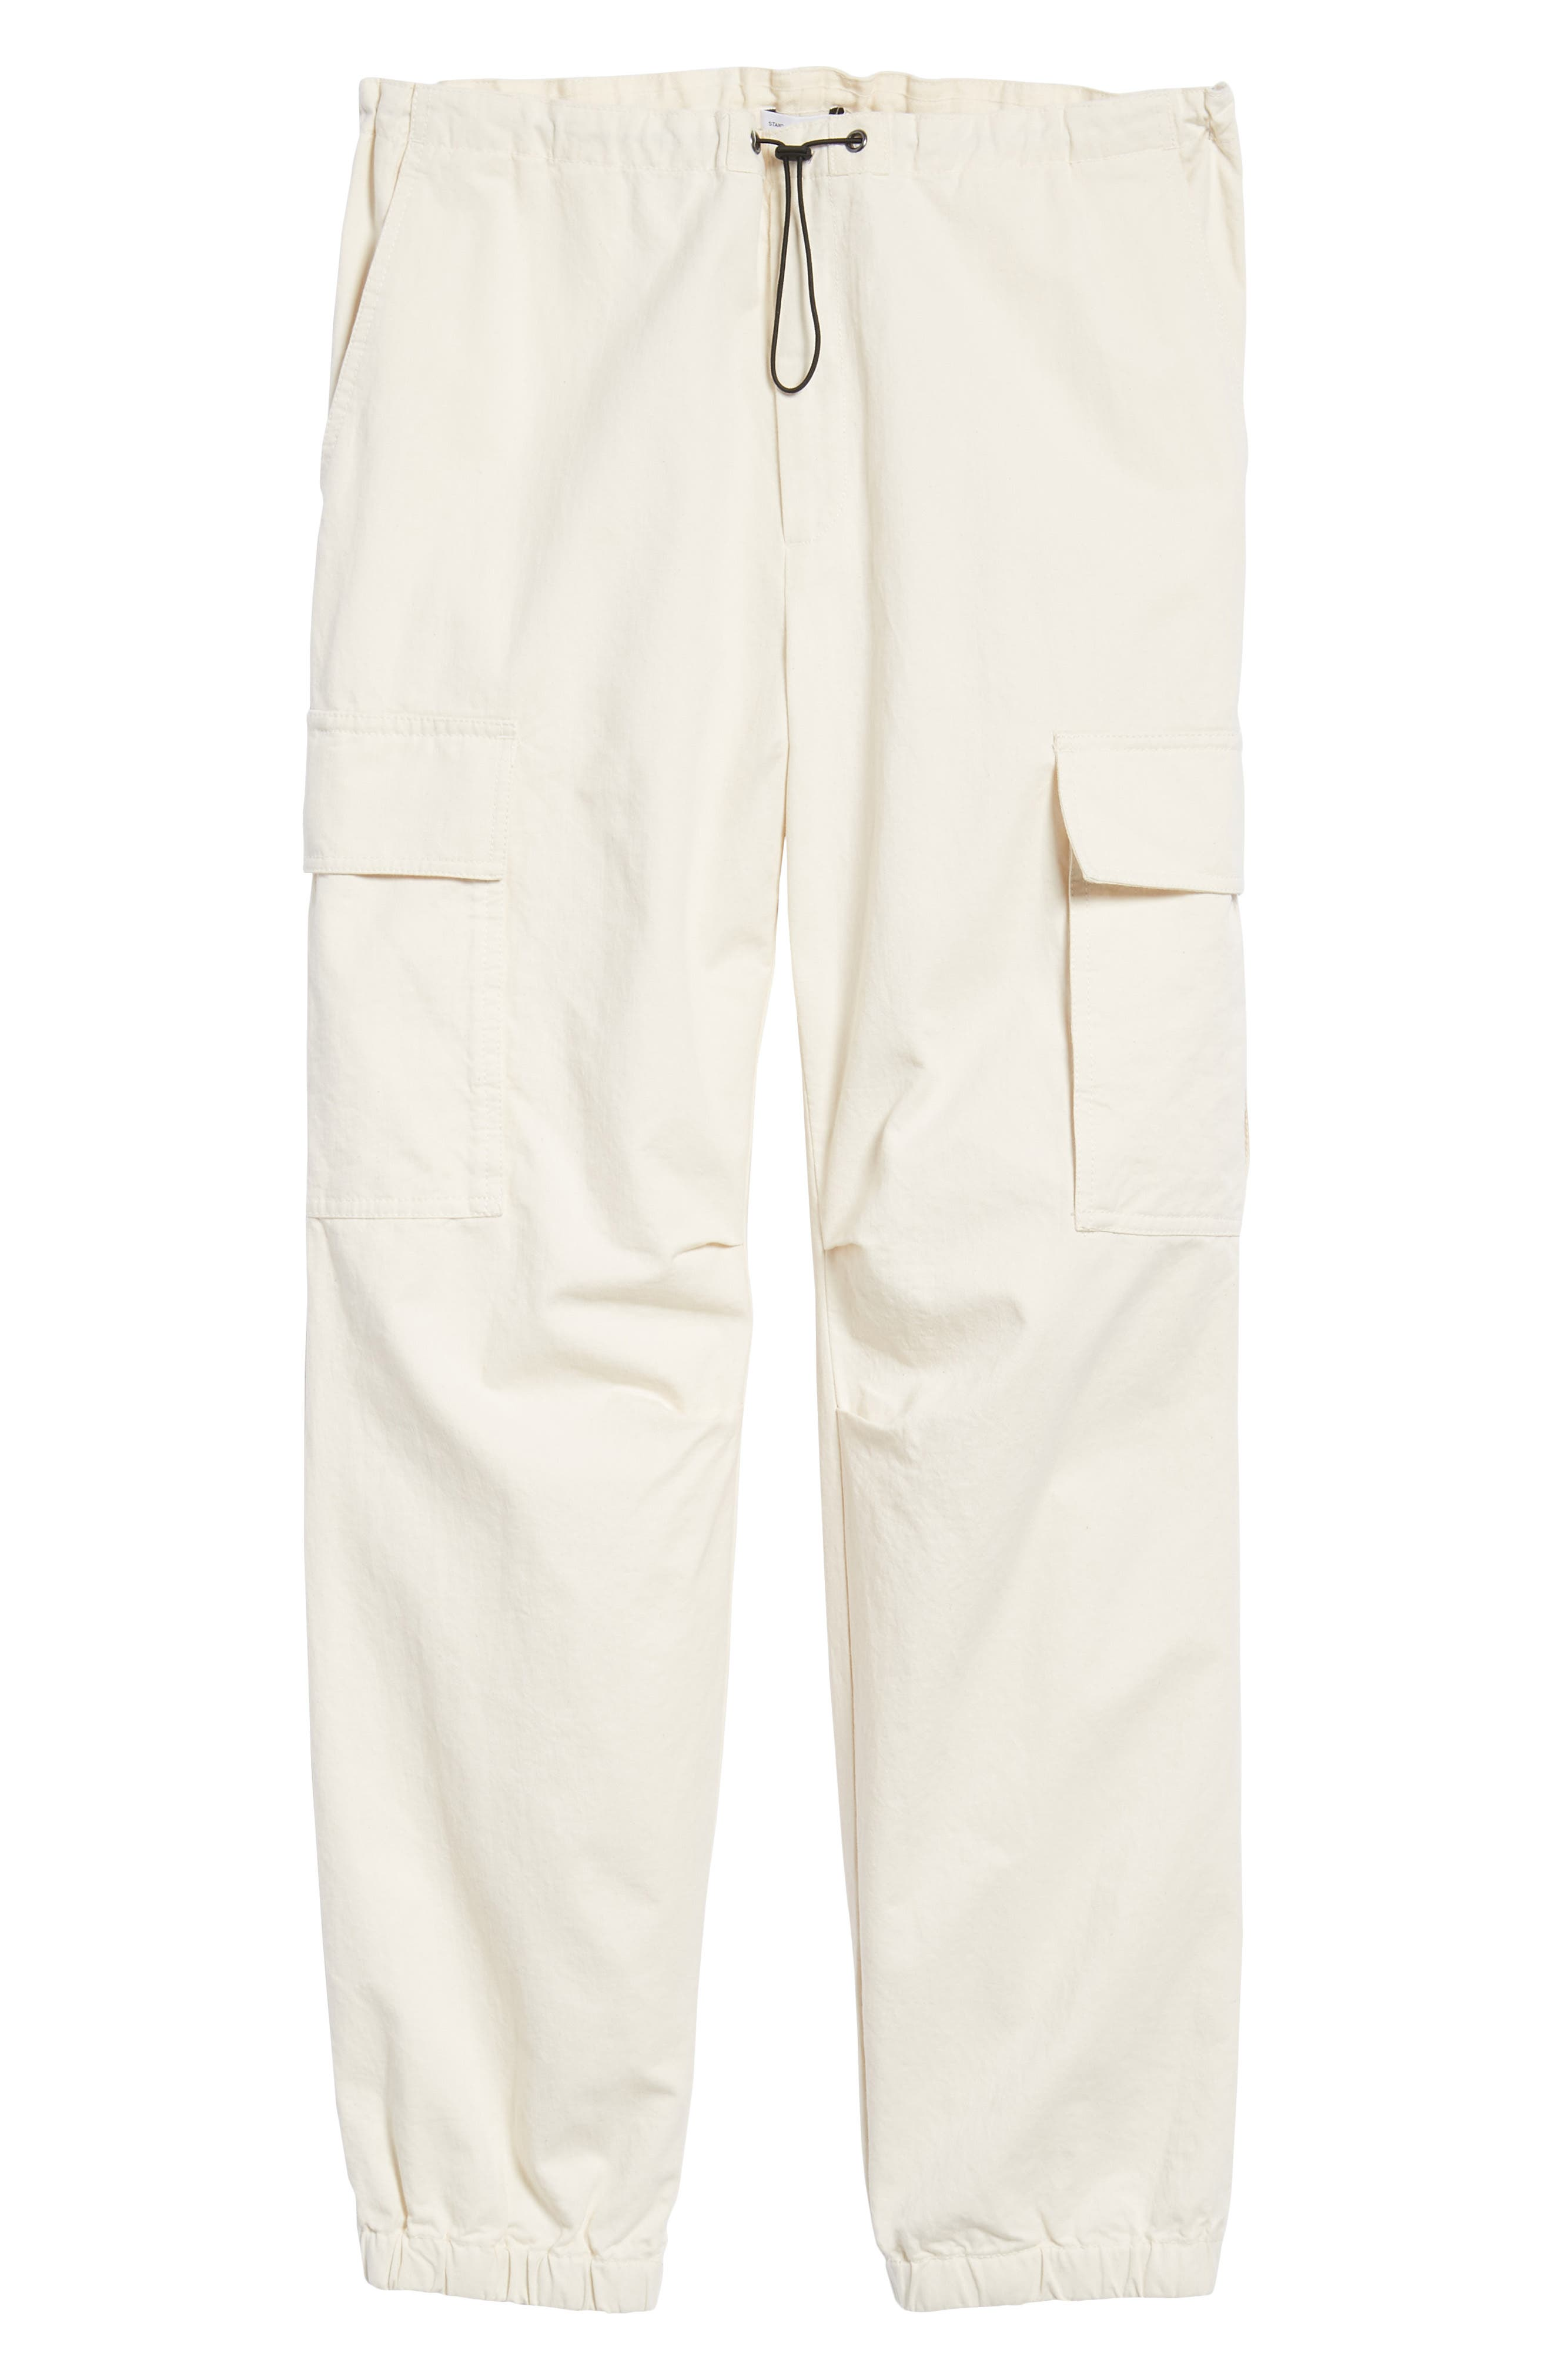 JAMES PERSE,                             Cargo Pants,                             Alternate thumbnail 6, color,                             IVORY